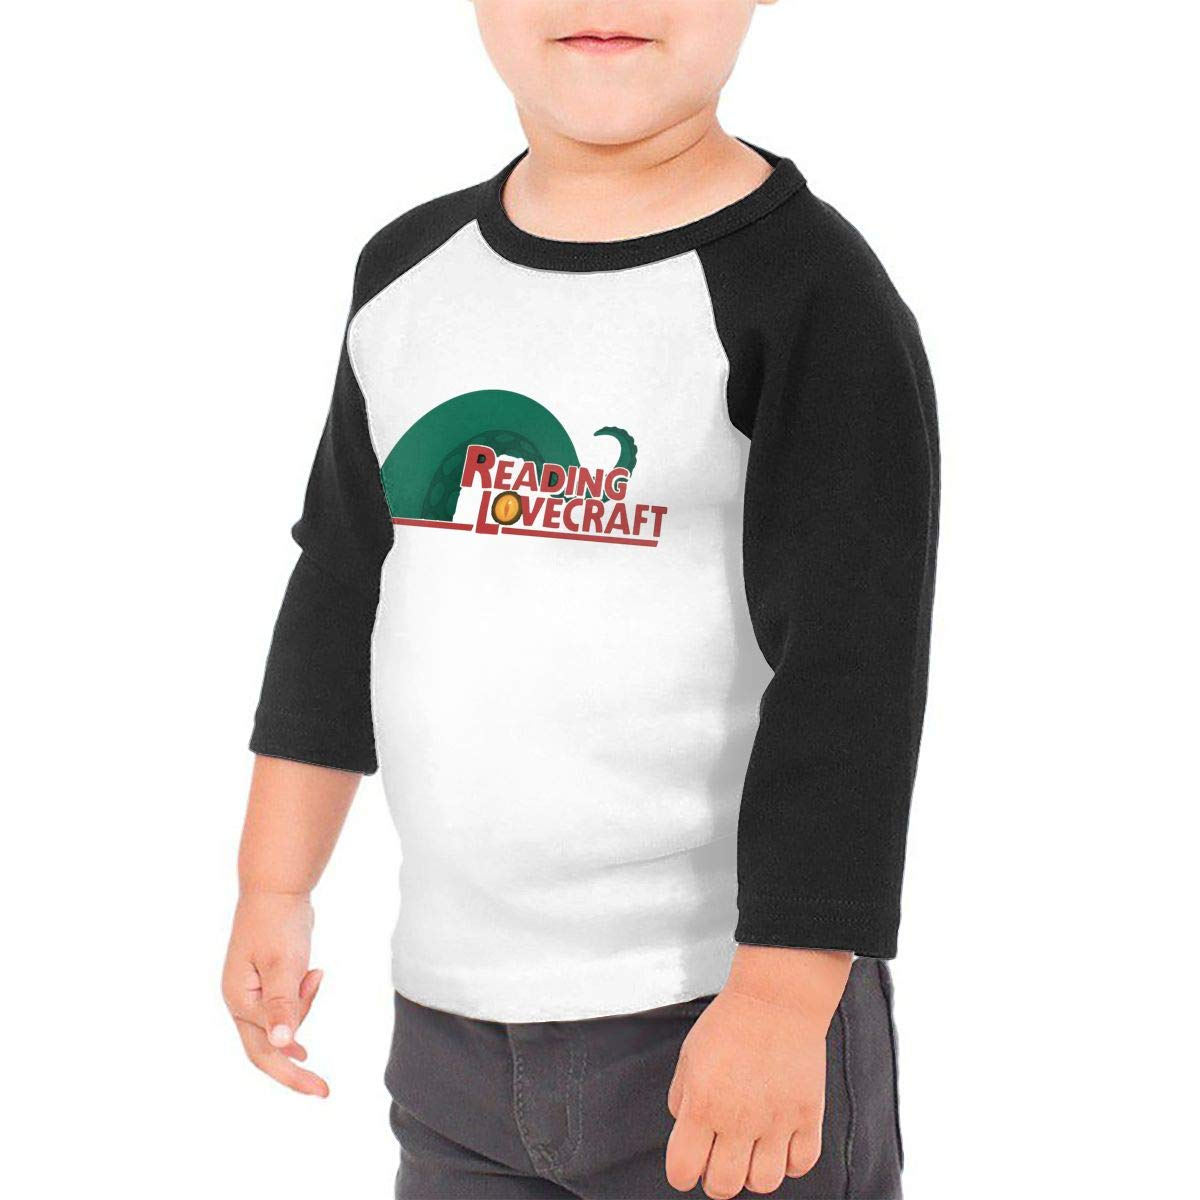 yimo Reading Lovecraft Unisex Toddler Baseball Jersey Contrast 3//4 Sleeves Tee